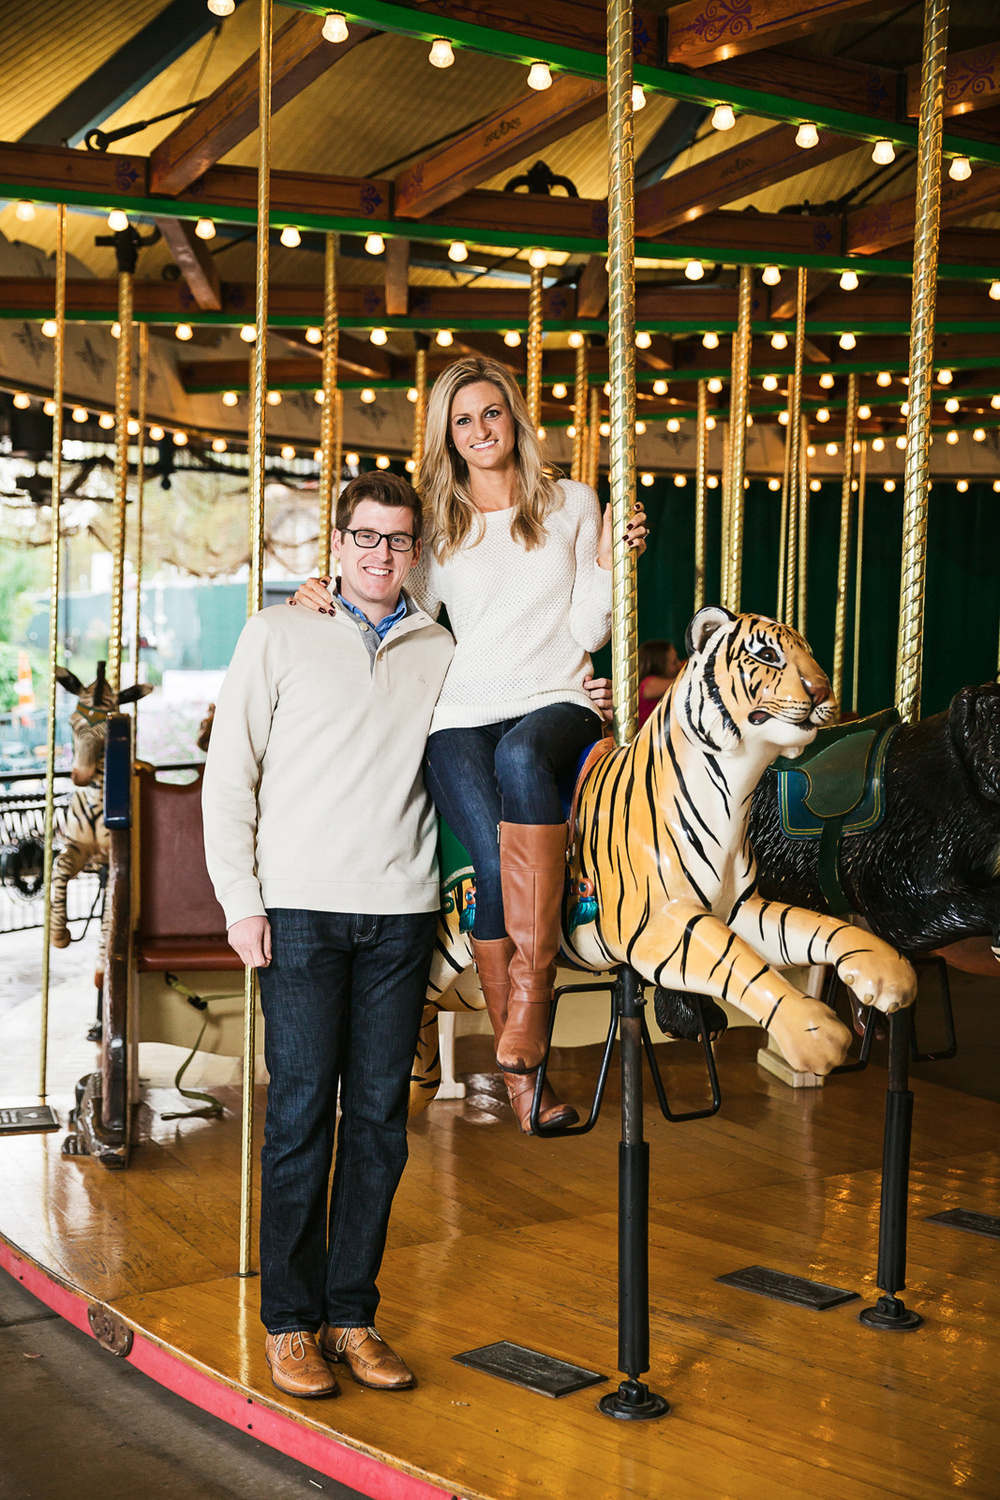 Oldani-Photography-St-Louis-Forest-Park-Zoo-Carousel-Engagement-Photos.jpg